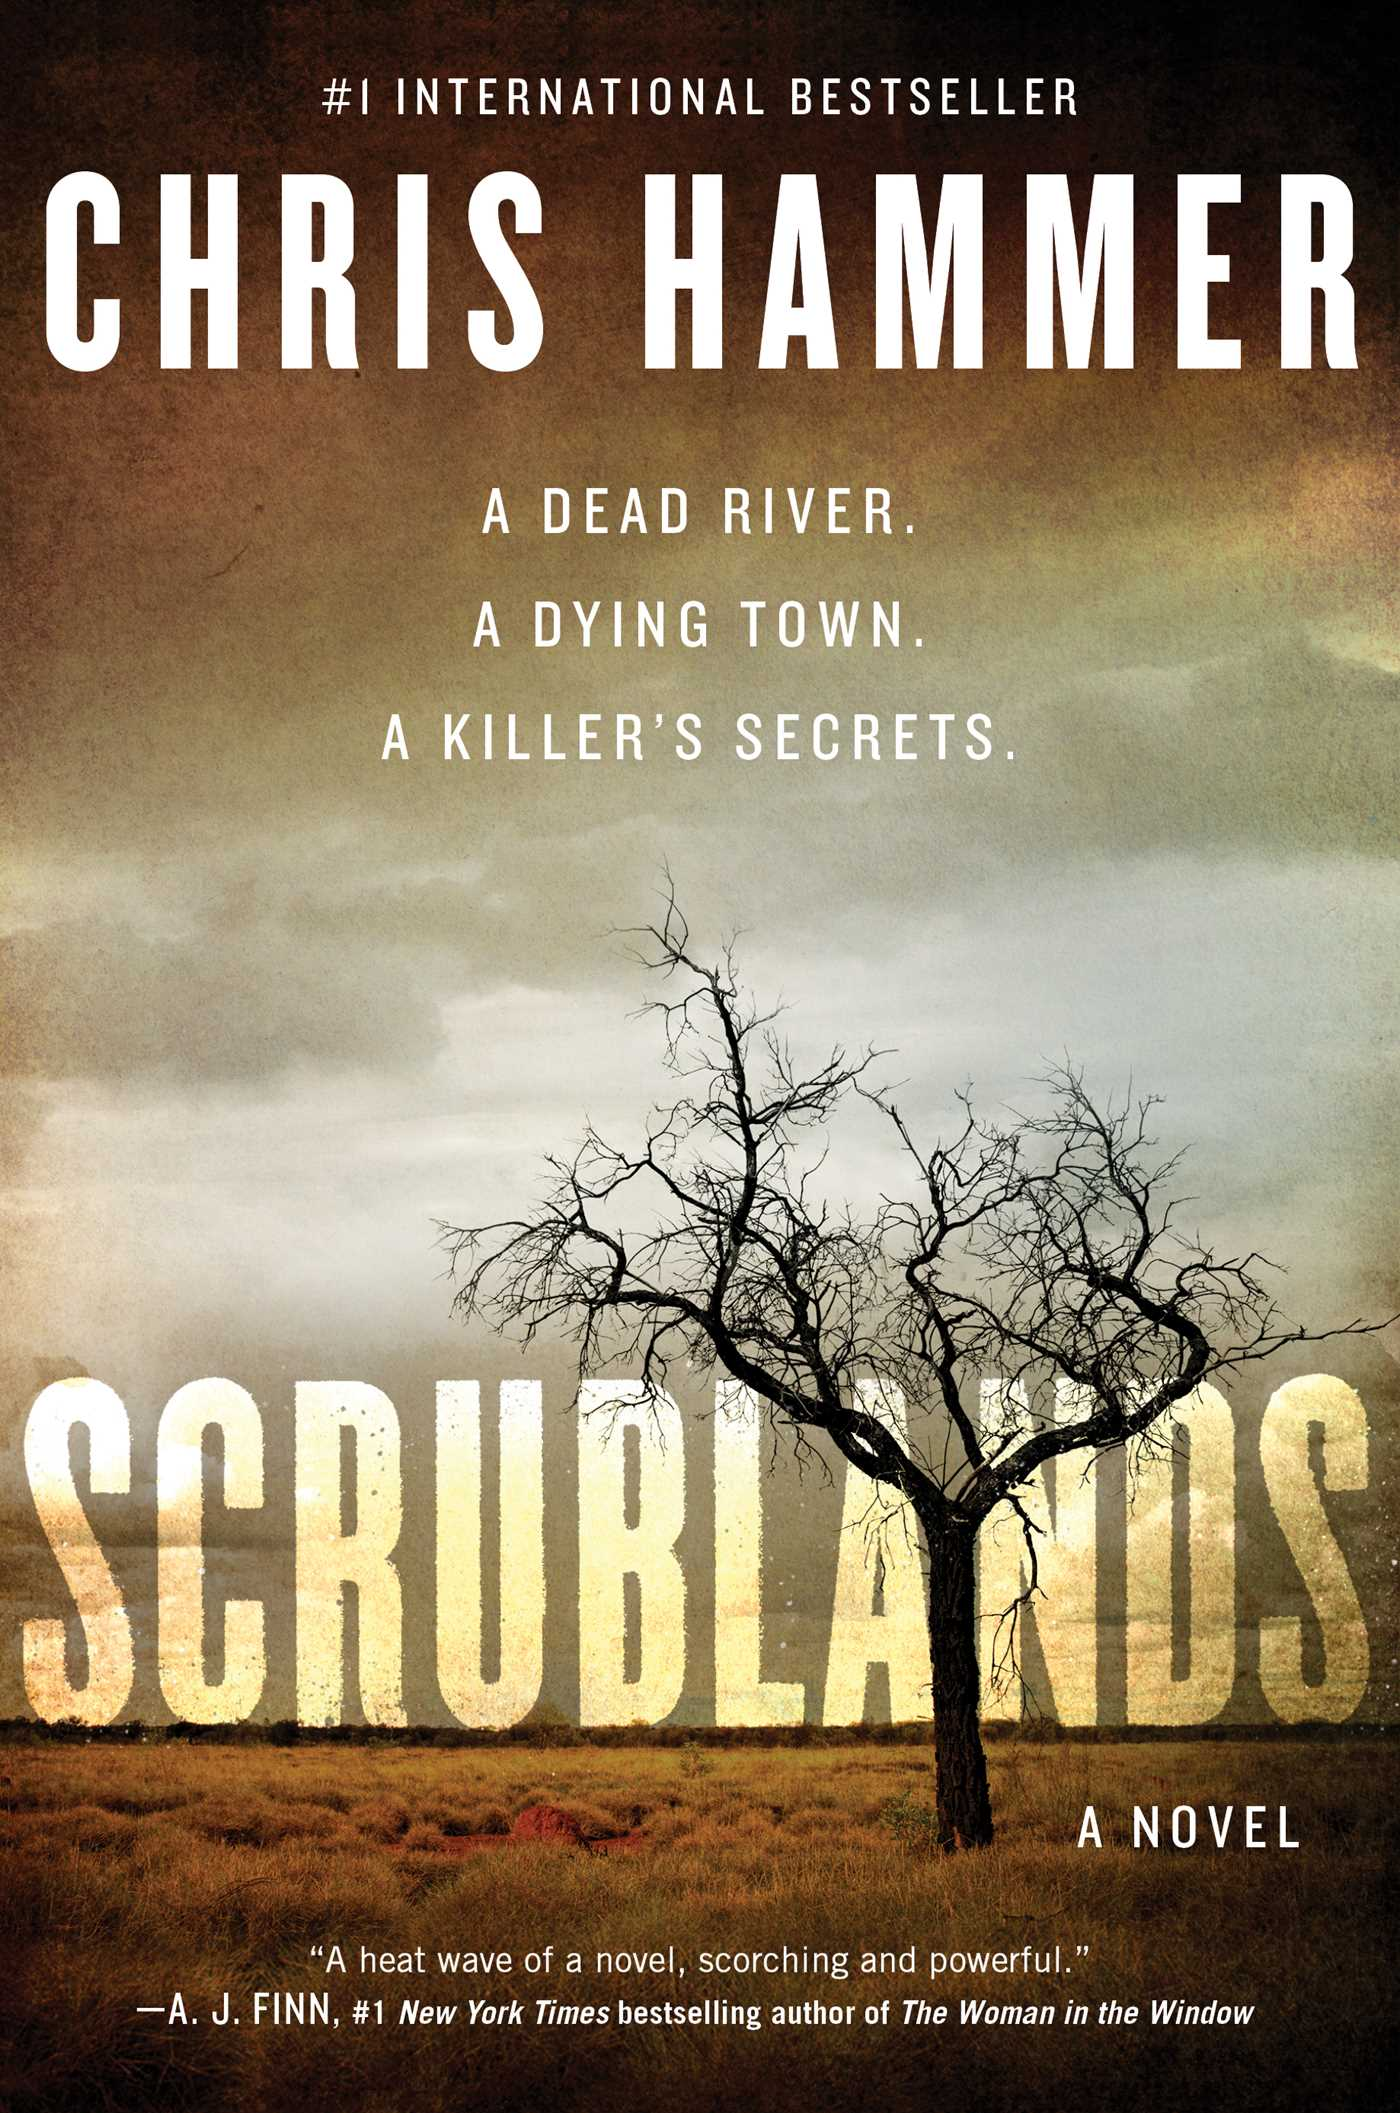 Scrublands | Book by Chris Hammer | Official Publisher Page | Simon